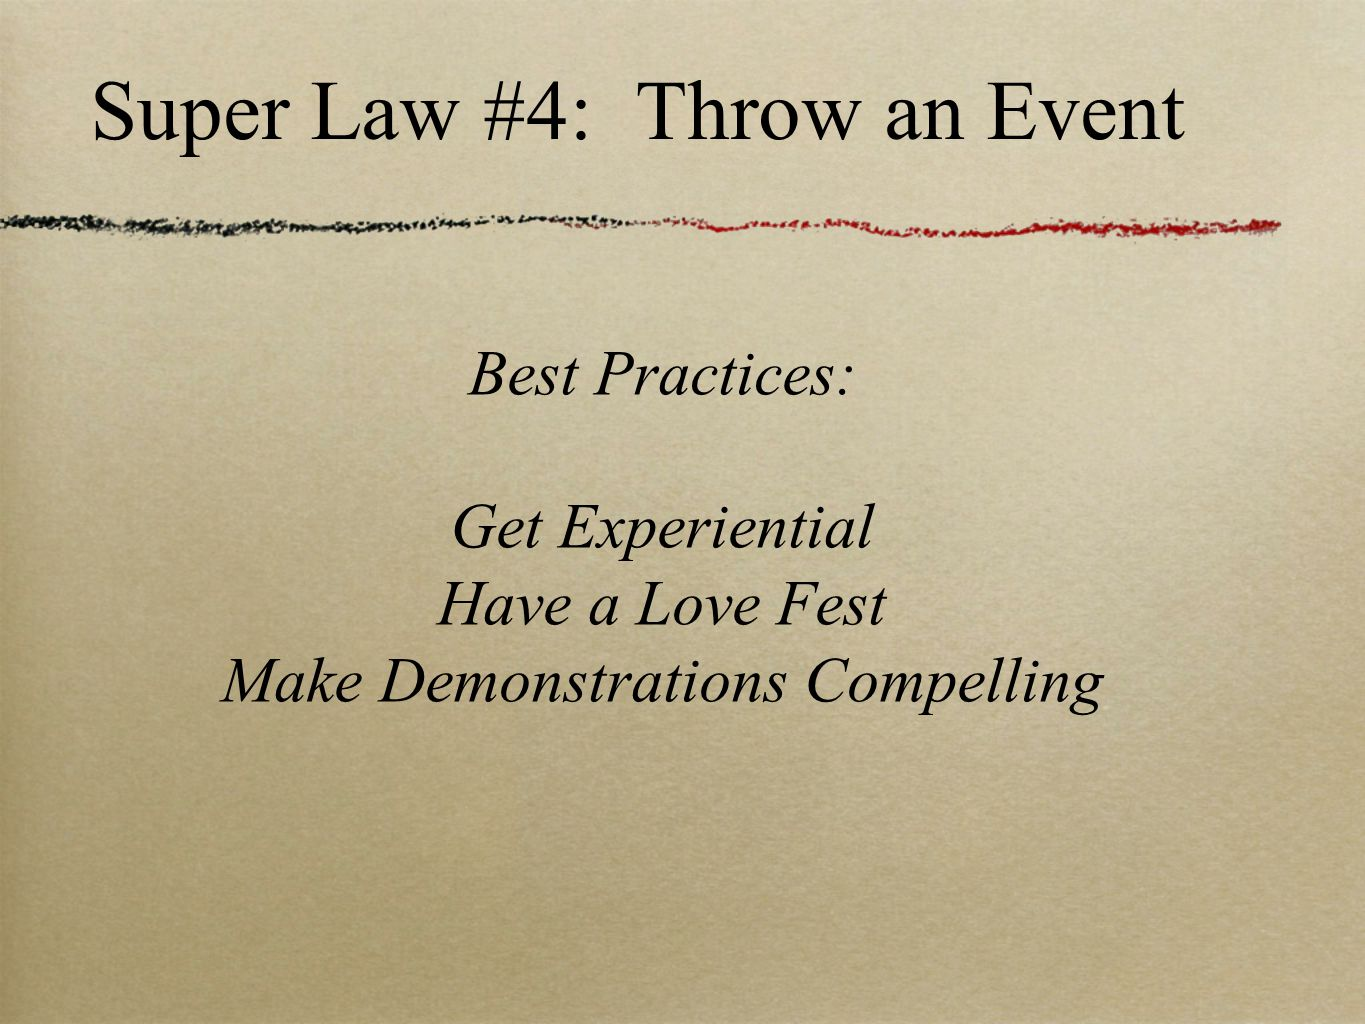 Super Law #4: Throw an Event Best Practices: Get Experiential Have a Love Fest Make Demonstrations Compelling